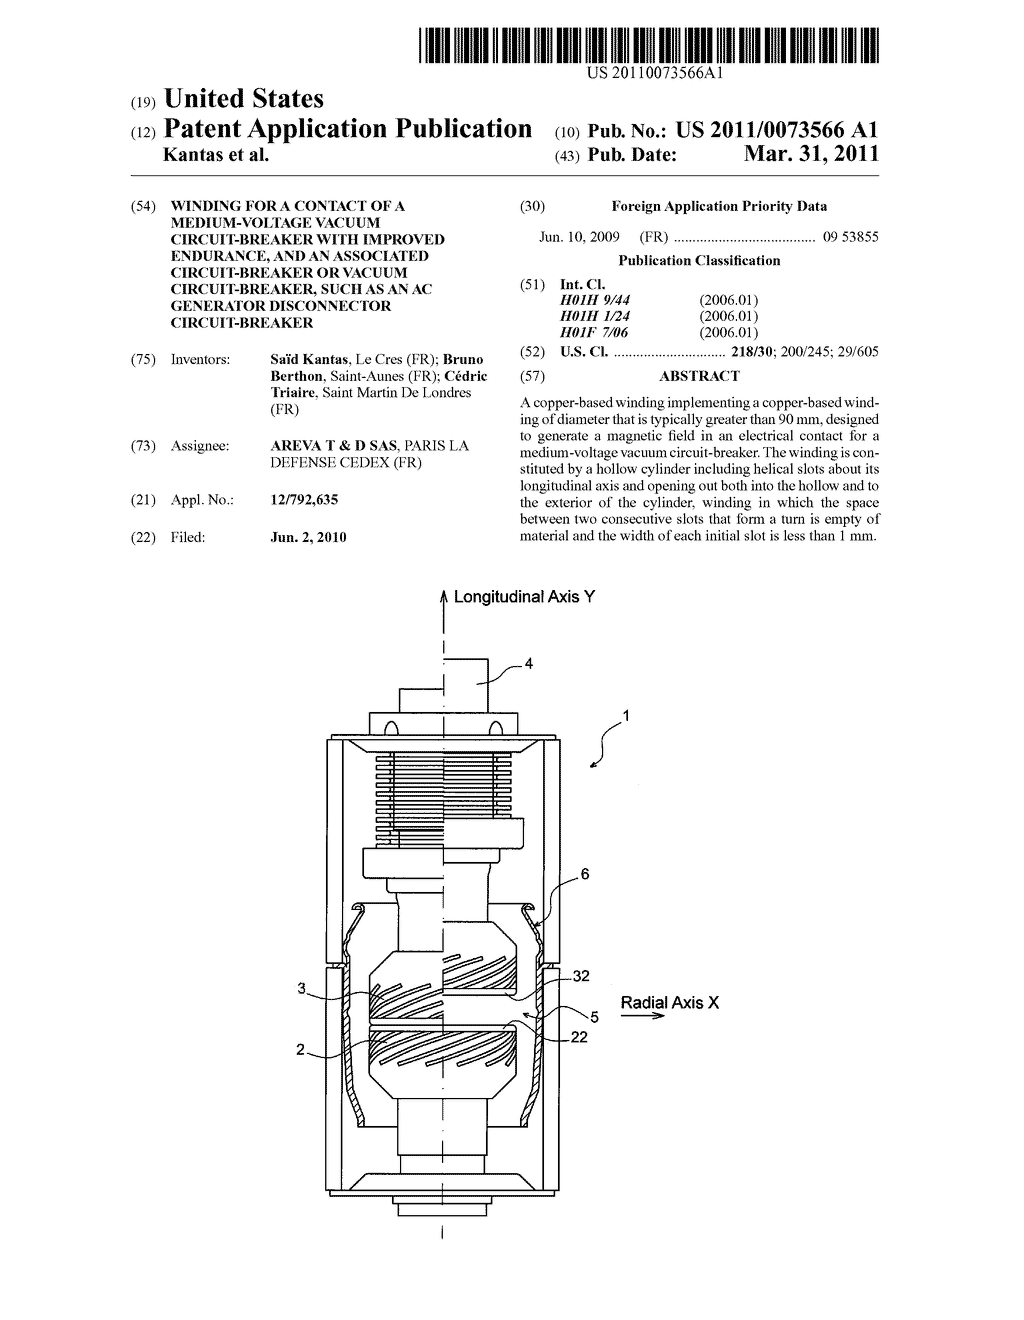 Winding For A Contact Of Medium Voltage Vacuum Circuit Breaker Ac Generator Wiring Diagram And An Associated Or Such As Disconnector Schematic Image 01